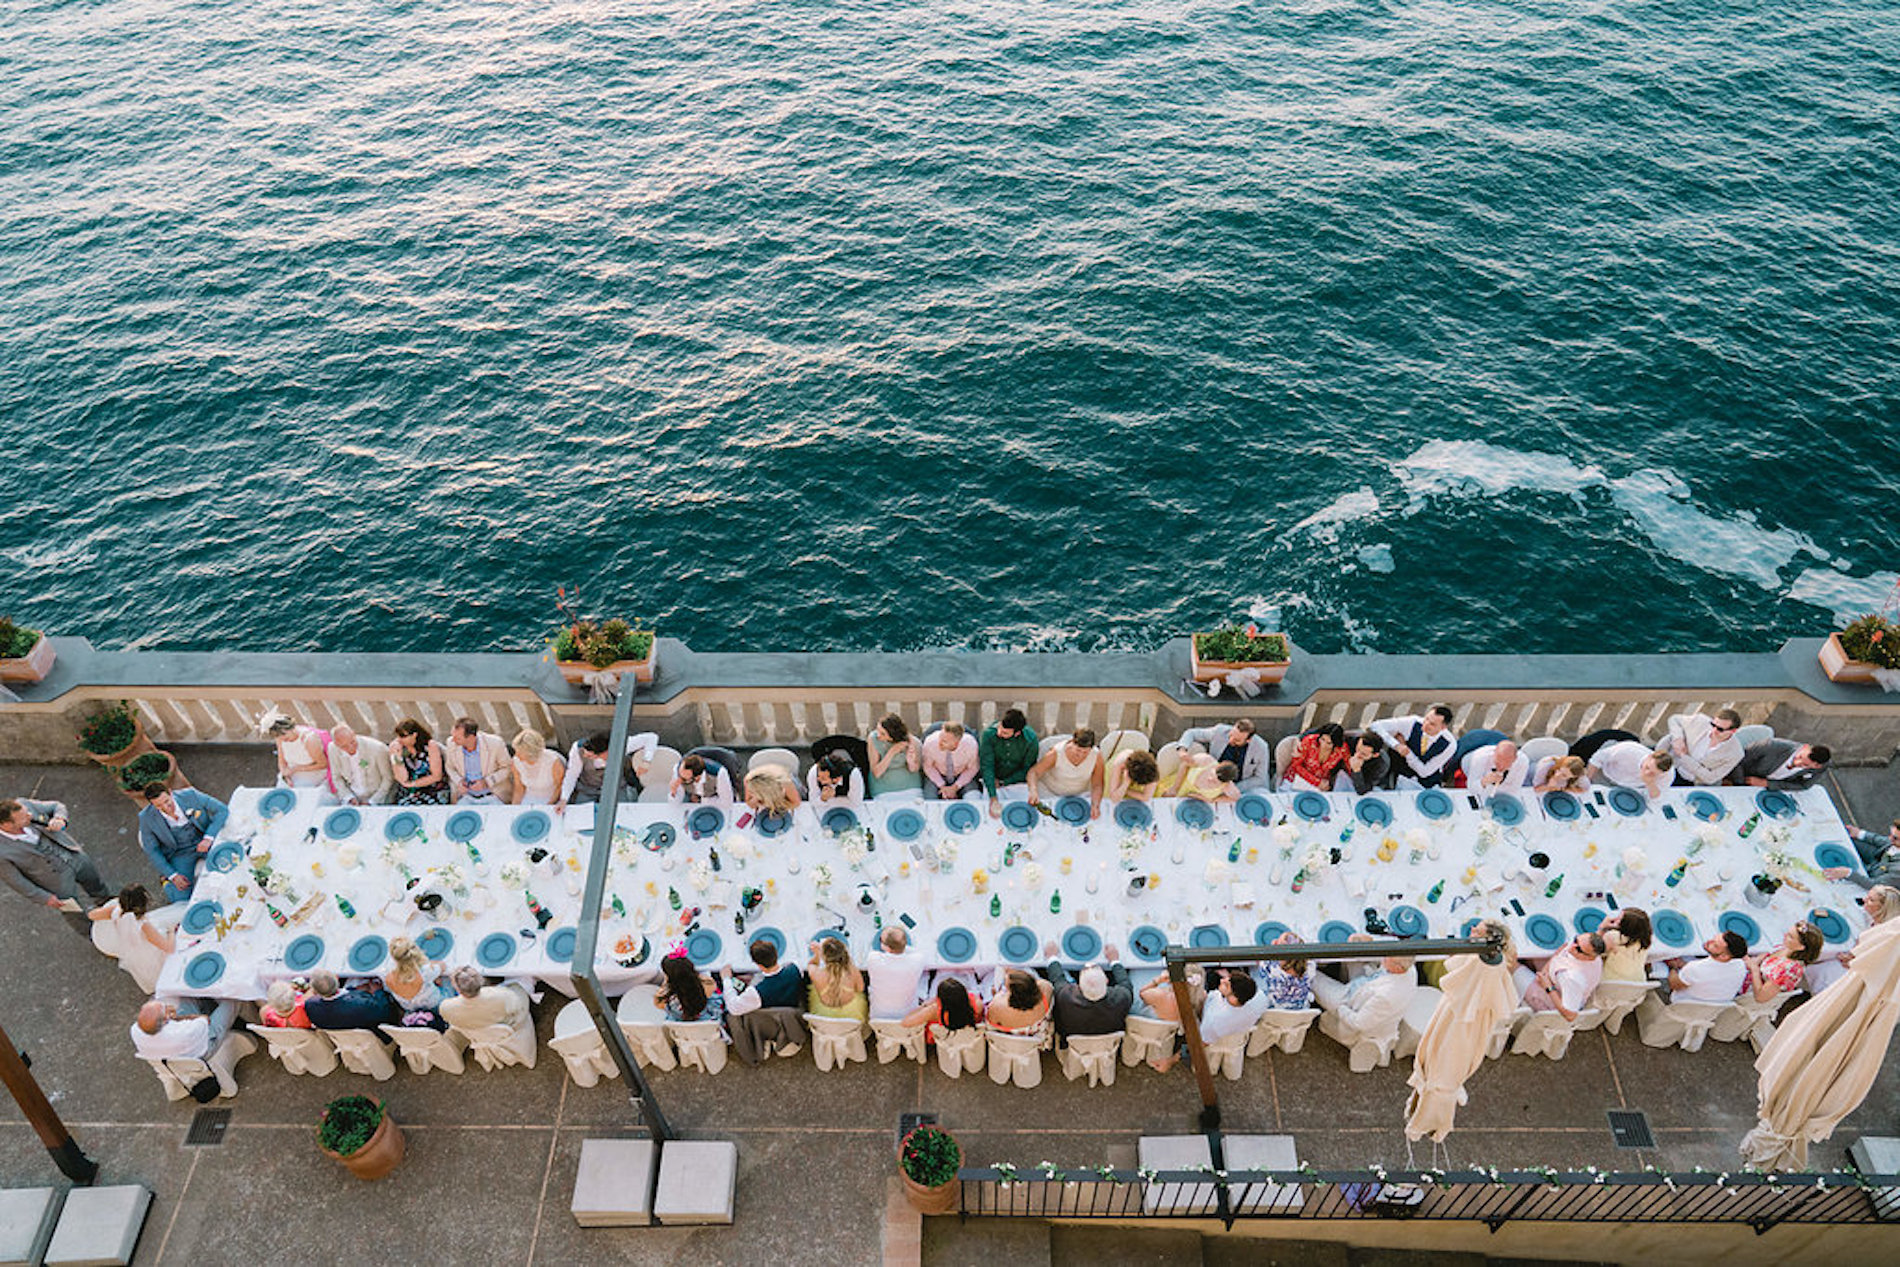 table with people eating dinner on a terrace overlooking the sea